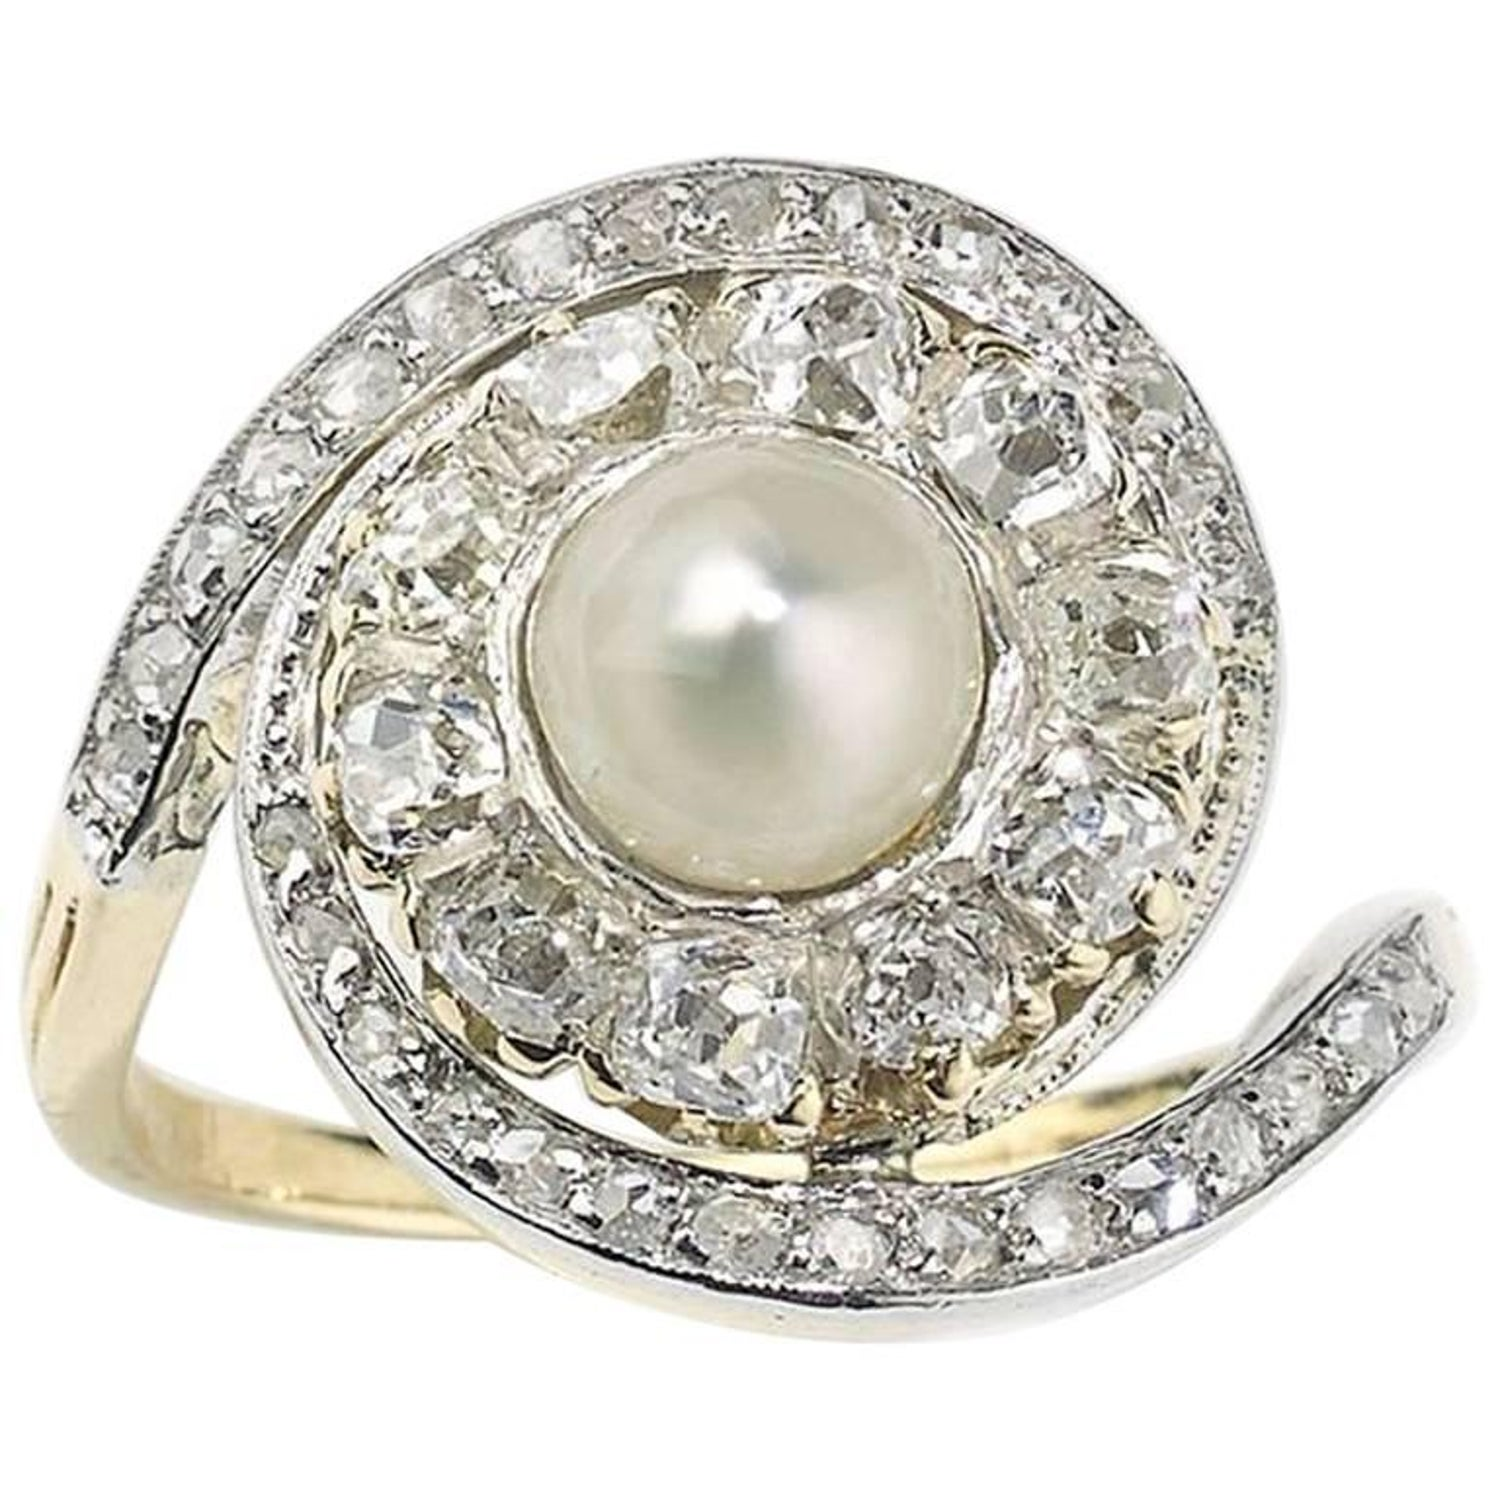 Antique Natural Pearl Rings - 118 For Sale at 1stdibs